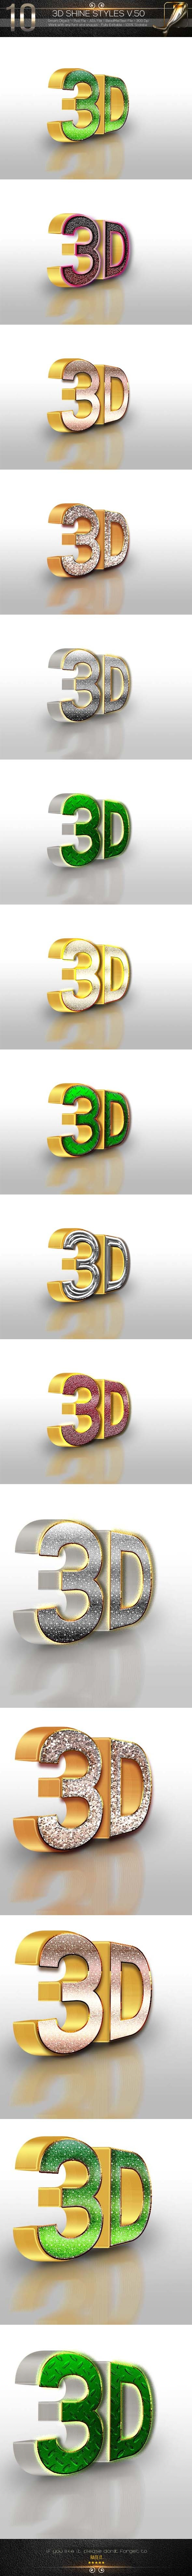 10 3D Text Style V.50 - Text Effects Styles